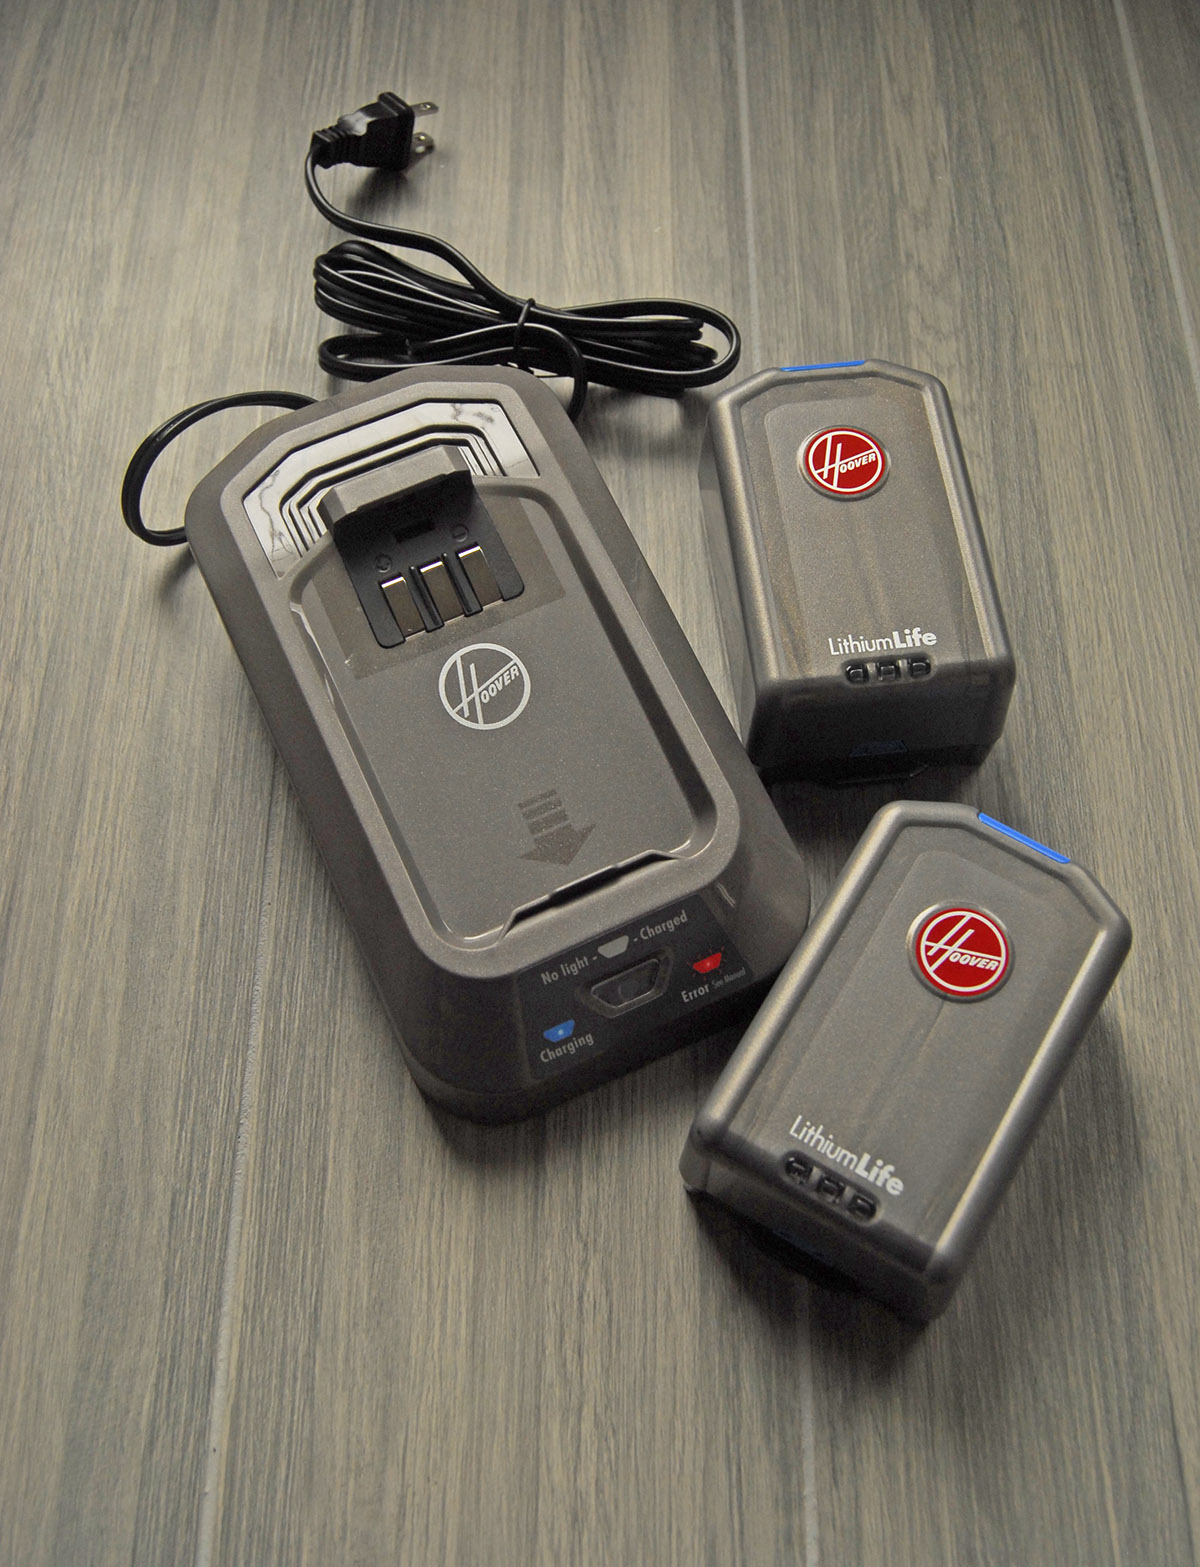 hoover air cordless lift battery